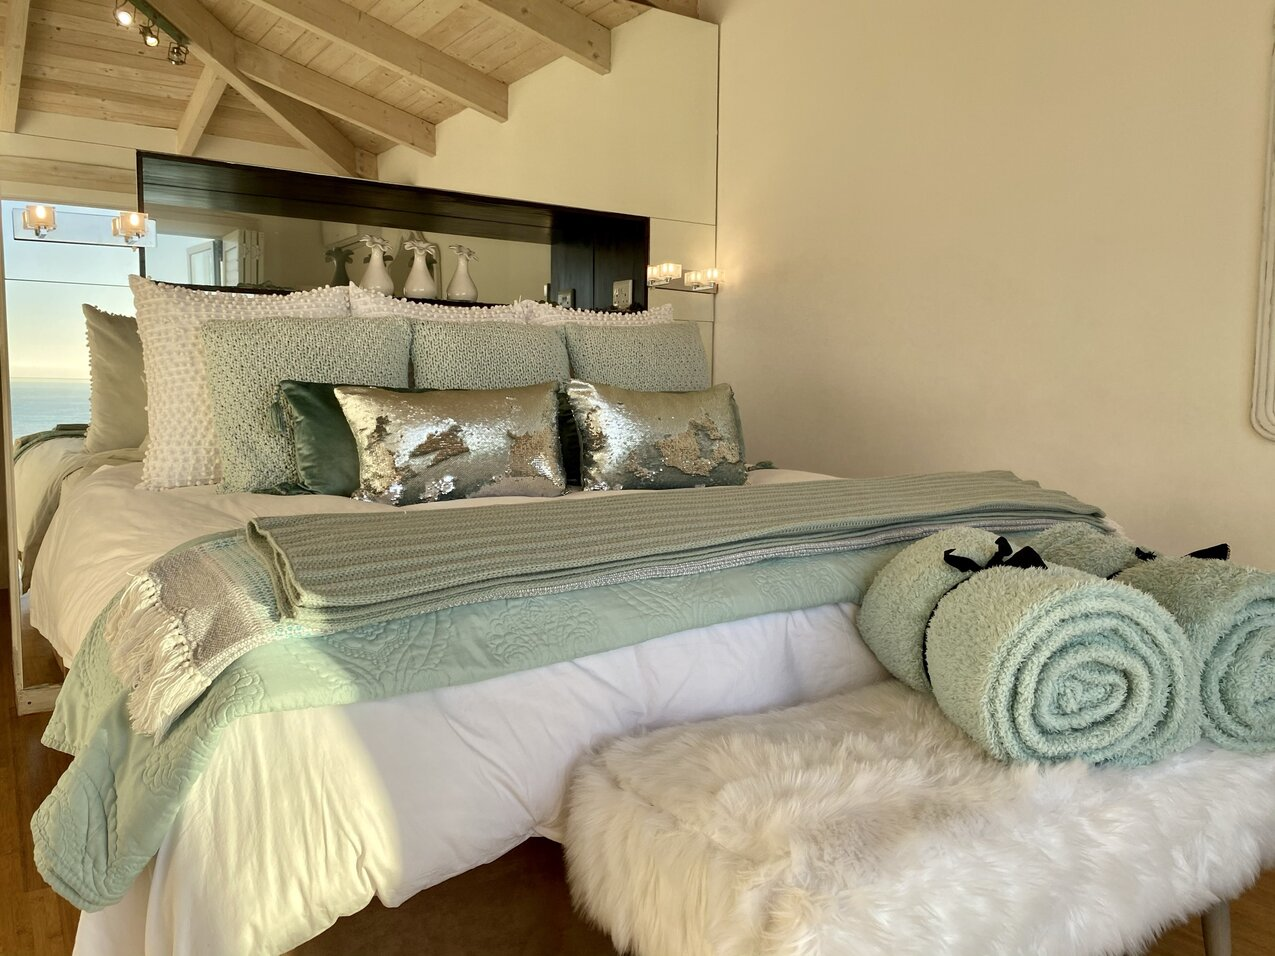 Clifton Seaview penthouse bedroom